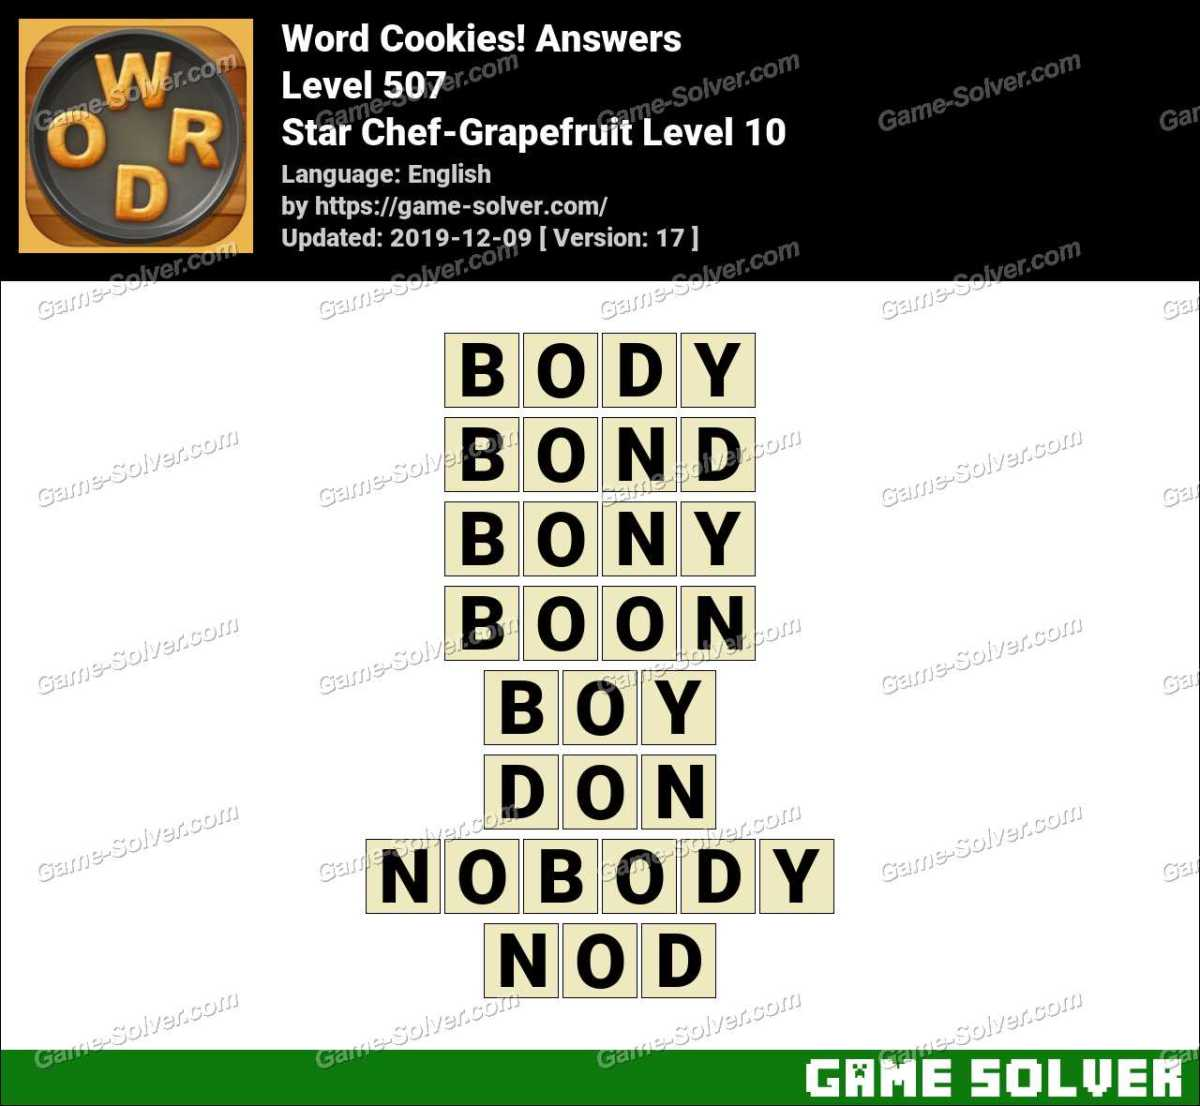 Word Cookies Star Chef-Grapefruit Level 10 Answers